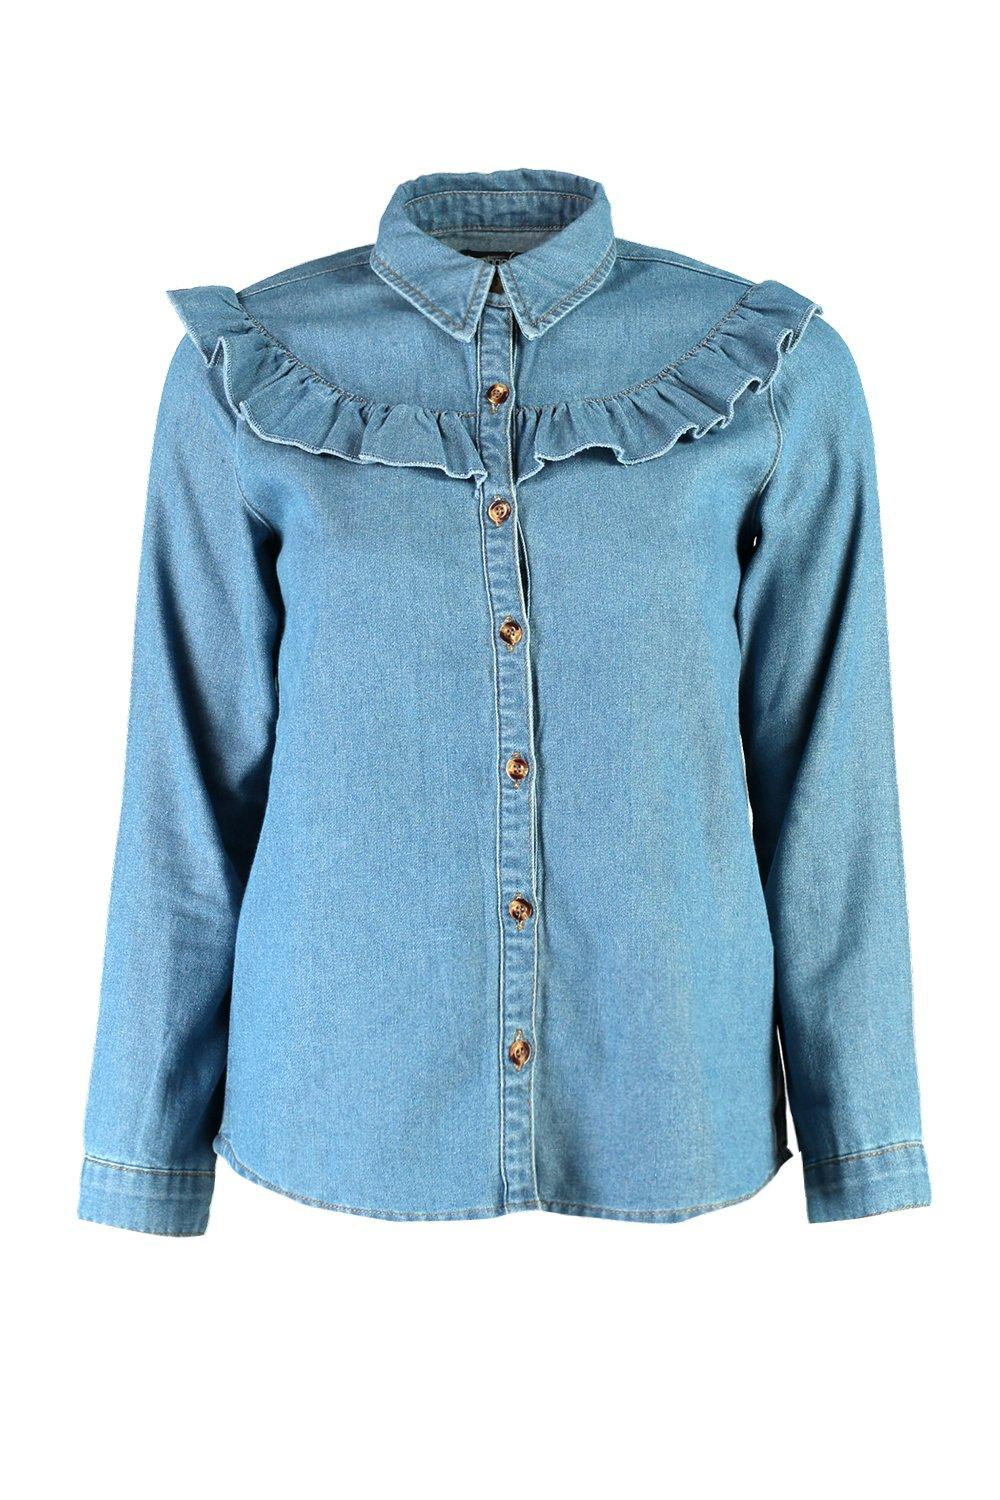 Boohoo womens petite ariana ruffle detail denim shirt in for Indigo denim shirt womens